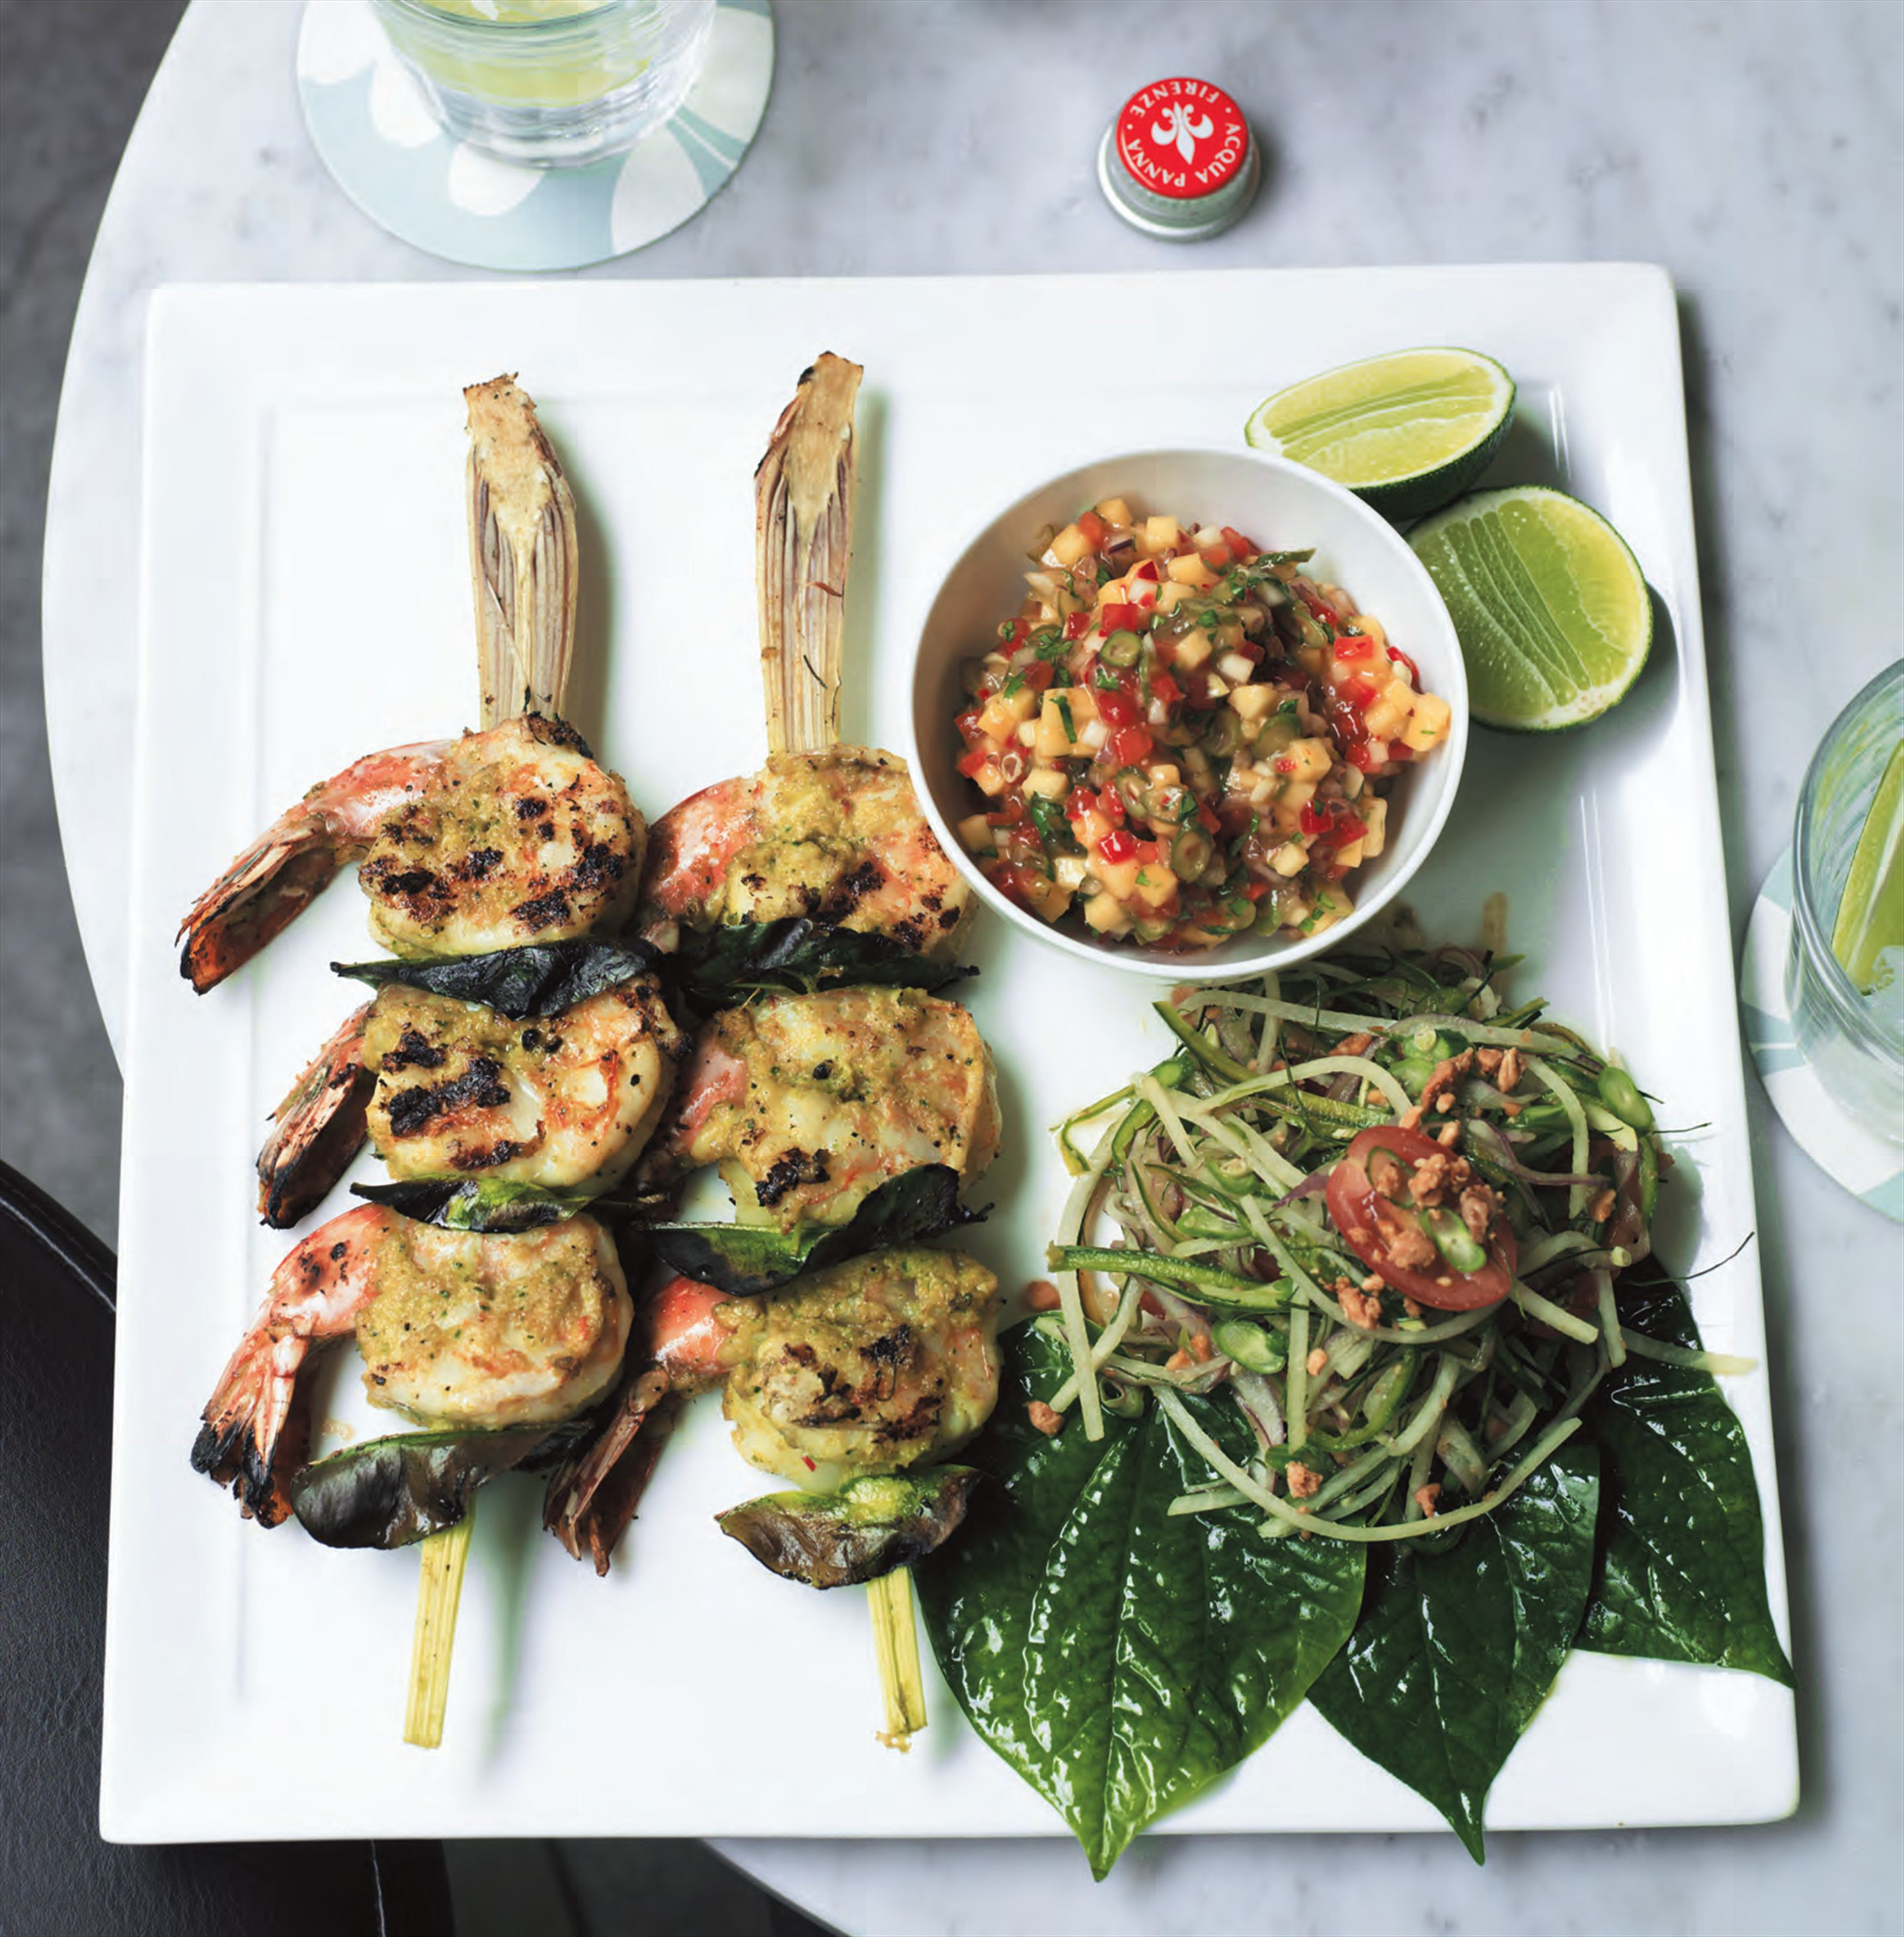 Grilled lemongrass and prawn skewers with green mango salsa